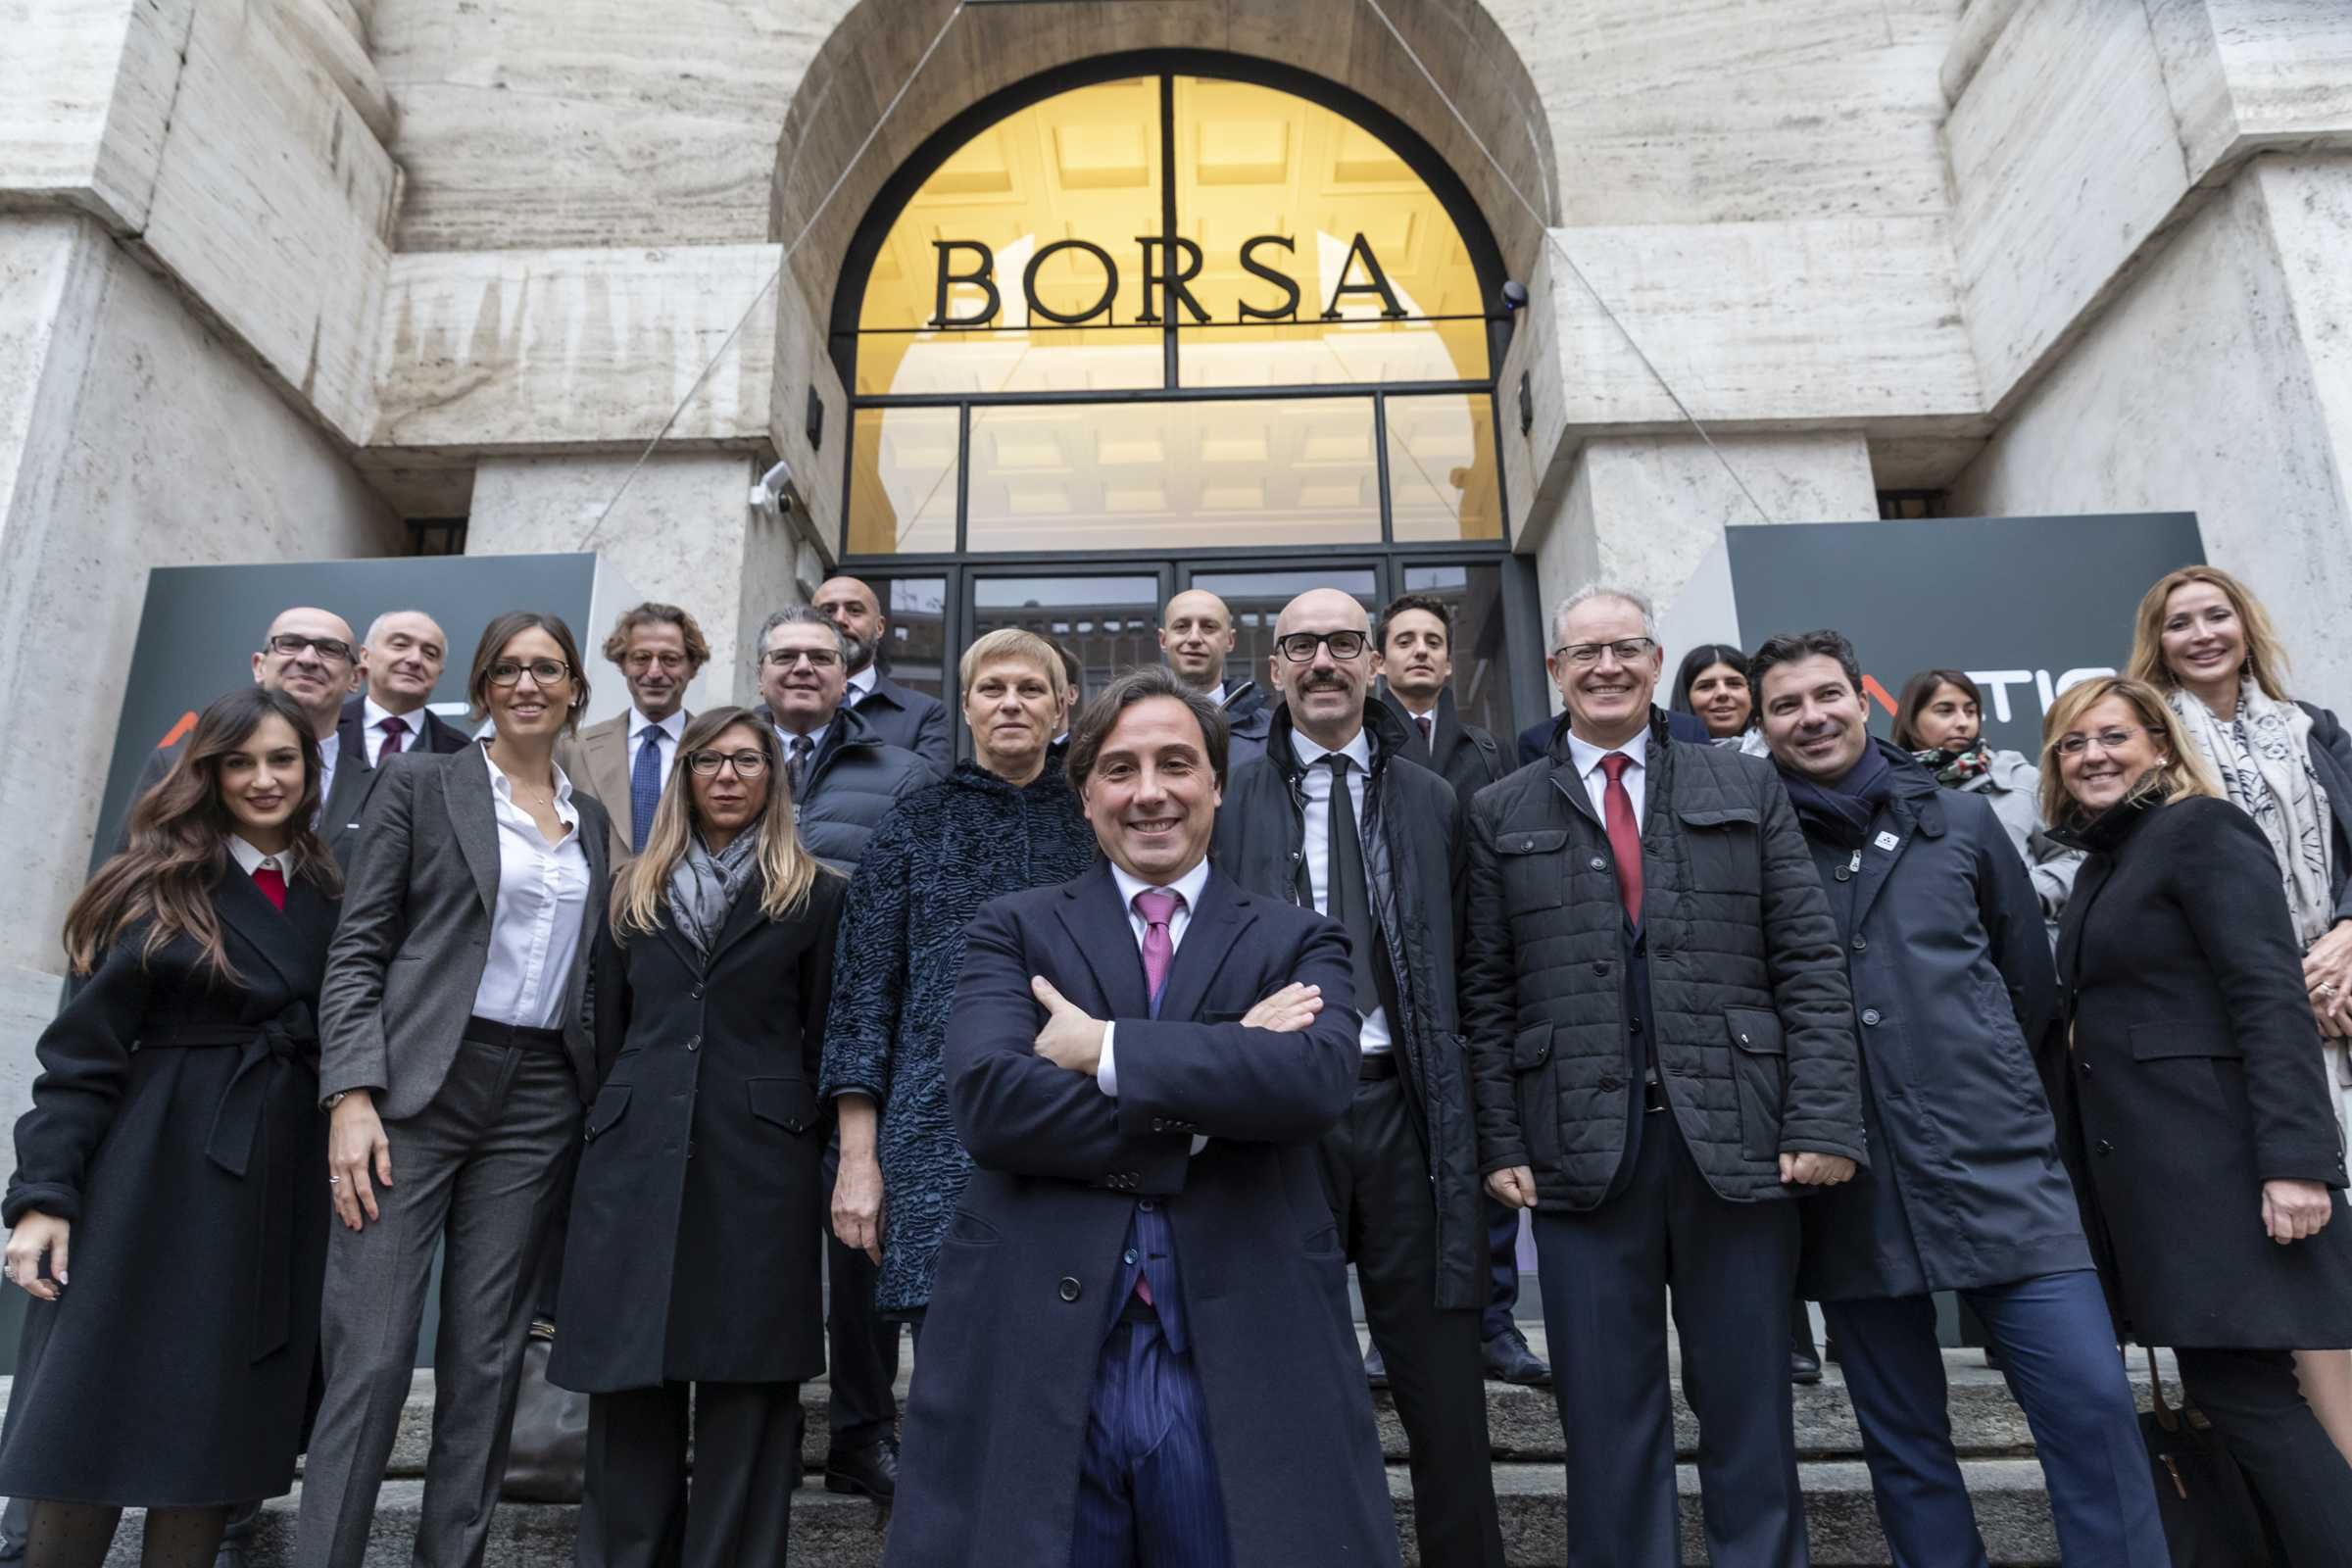 Matica Fintec si quota in Borsa